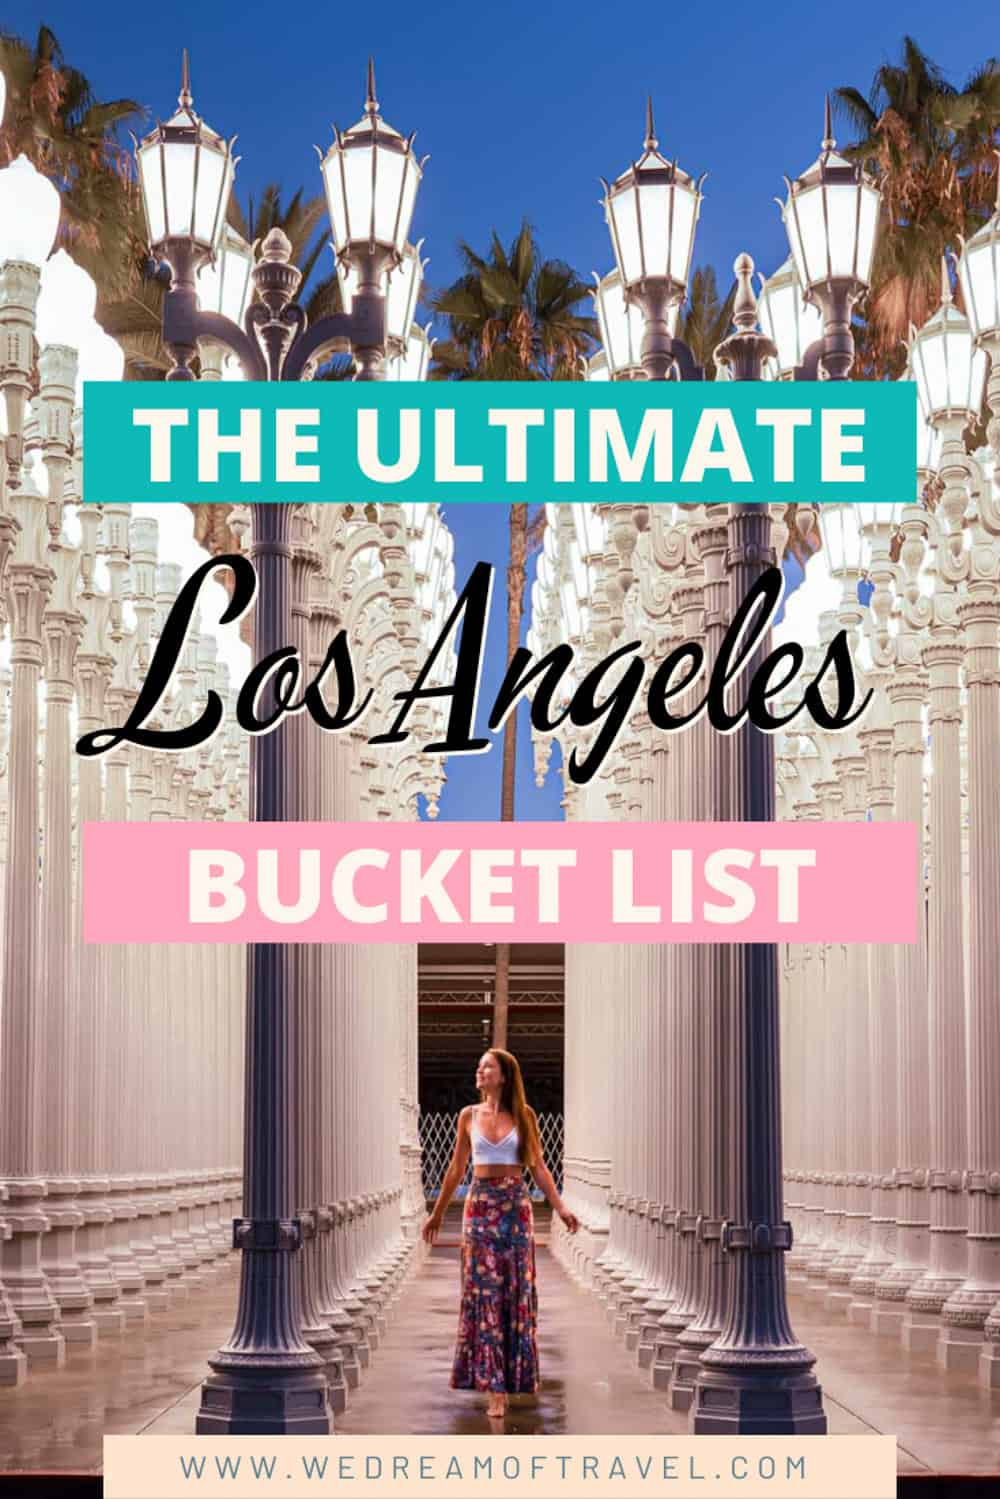 Los Angeles Bucket List.  #losangeles An ultimate guide for things to do in Los Angeles, California. #losangeles #california